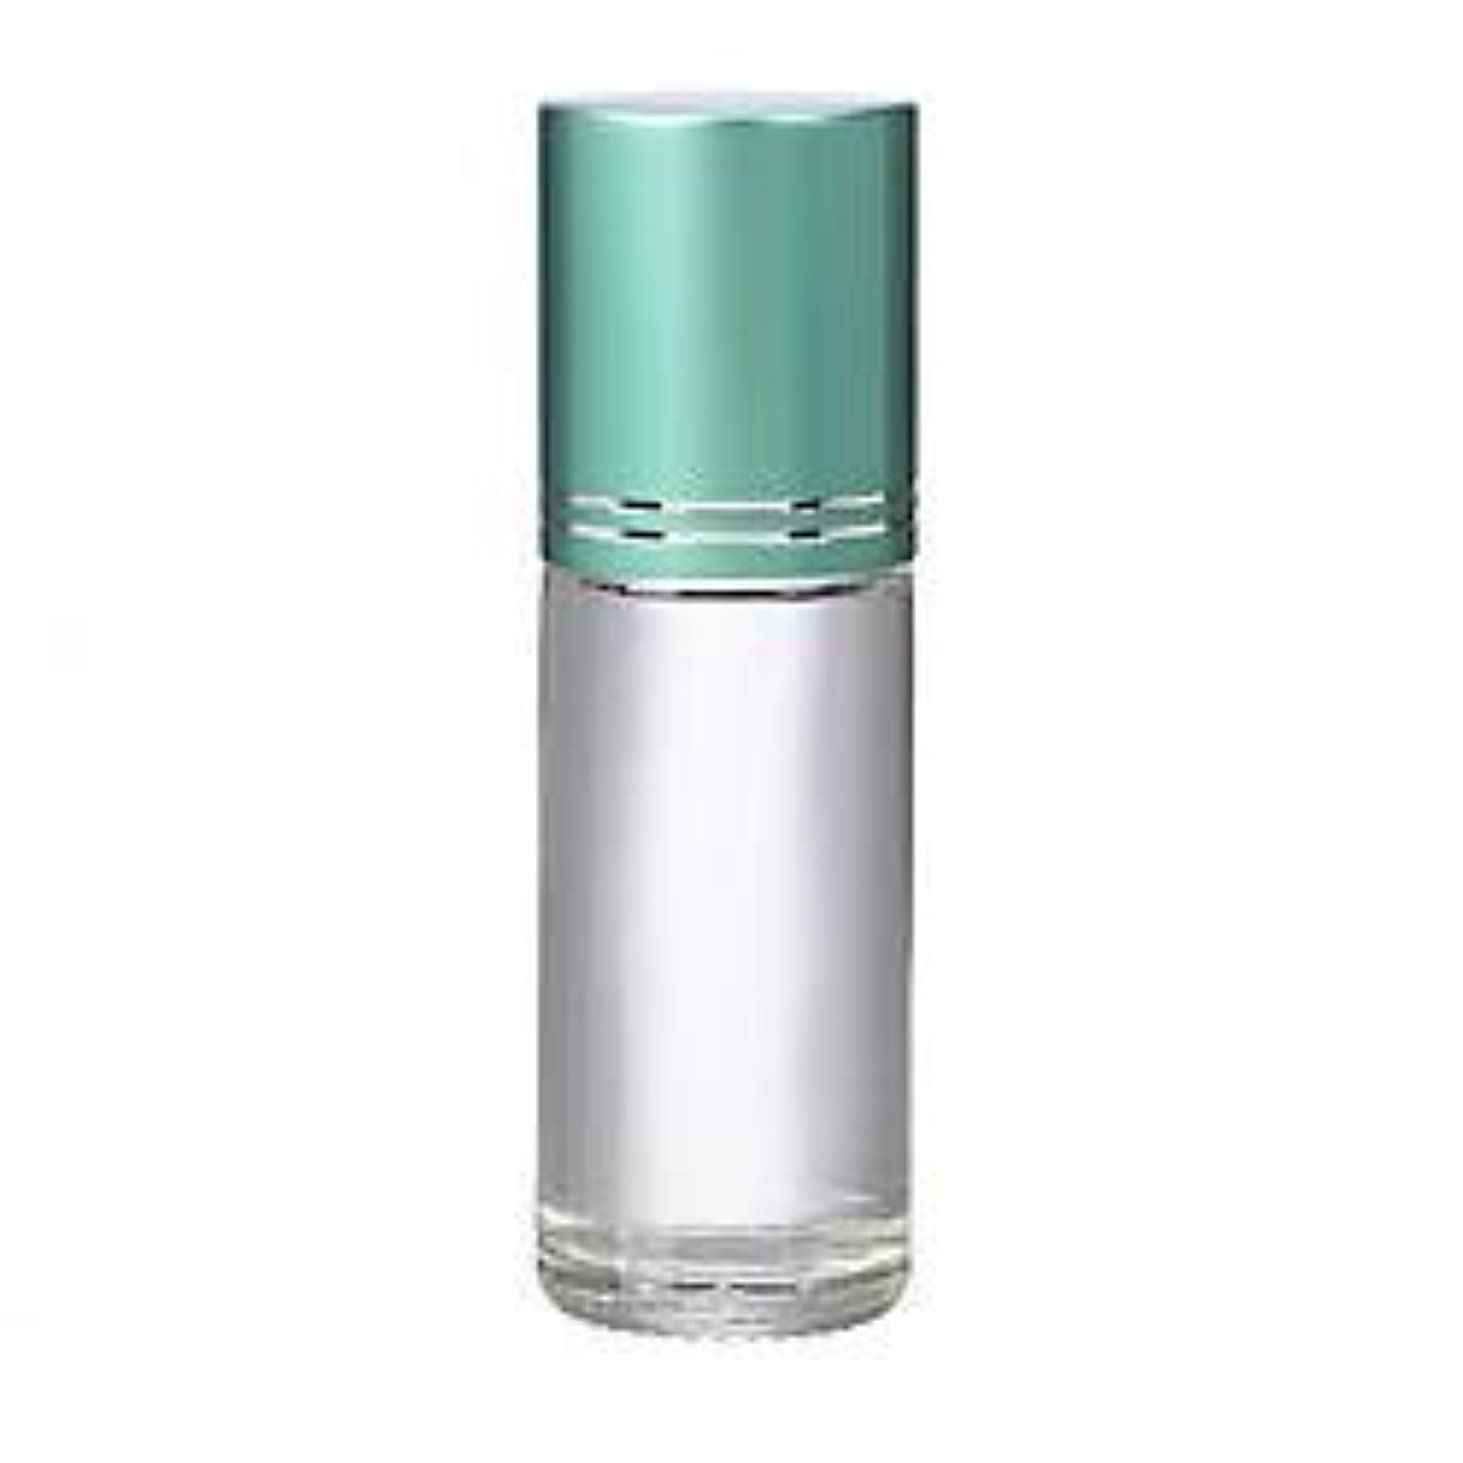 半島リボン一般的に言えば4 Bottles Large 30ml Roll On Empty Glass Bottles for Essential Oils Refillable 1 Oz Glass Roller Ball Roll-On...